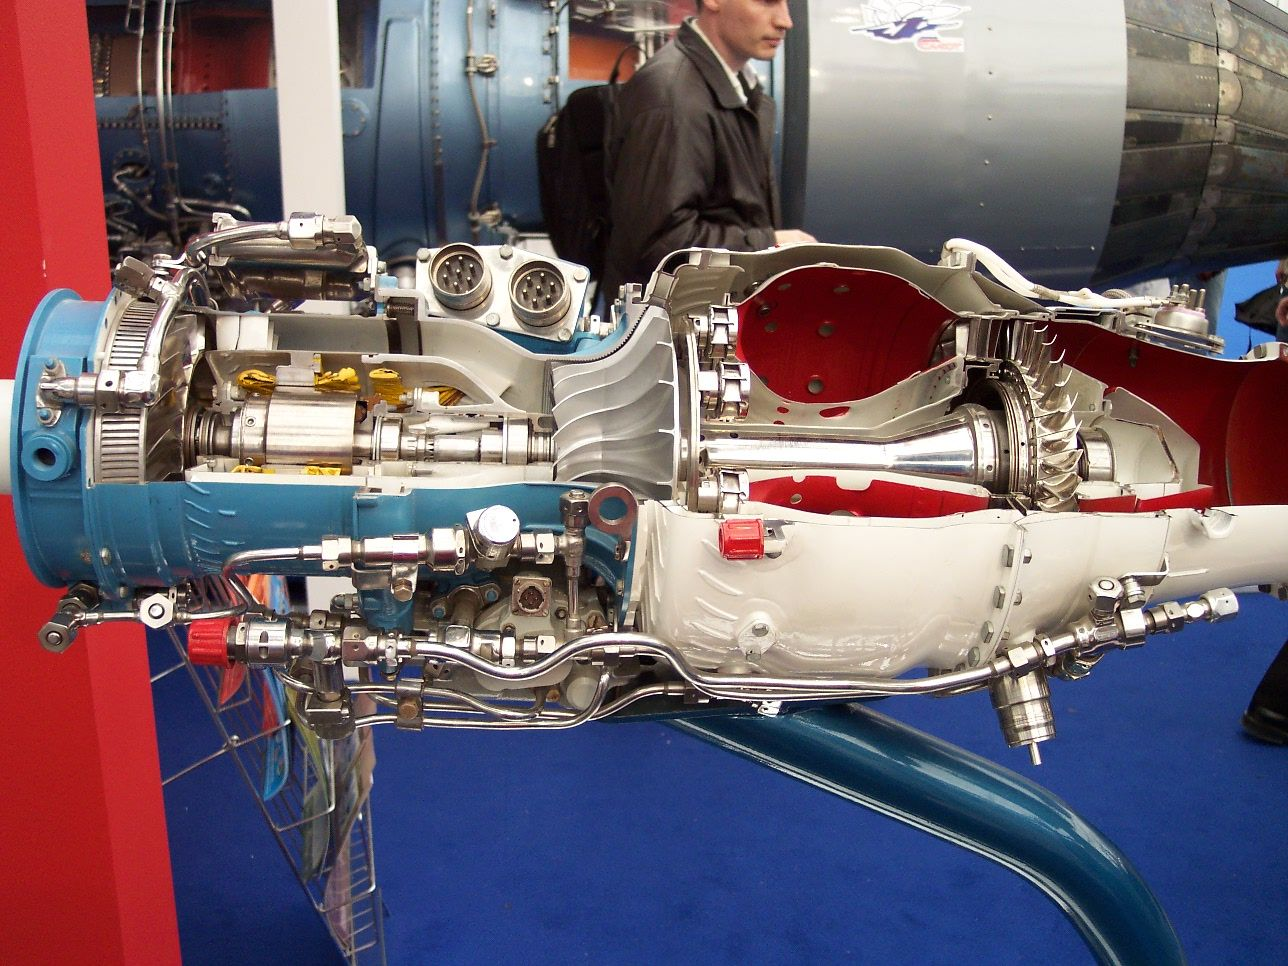 Jet Engine Cutaway Showing The Centrifugal Compressor And